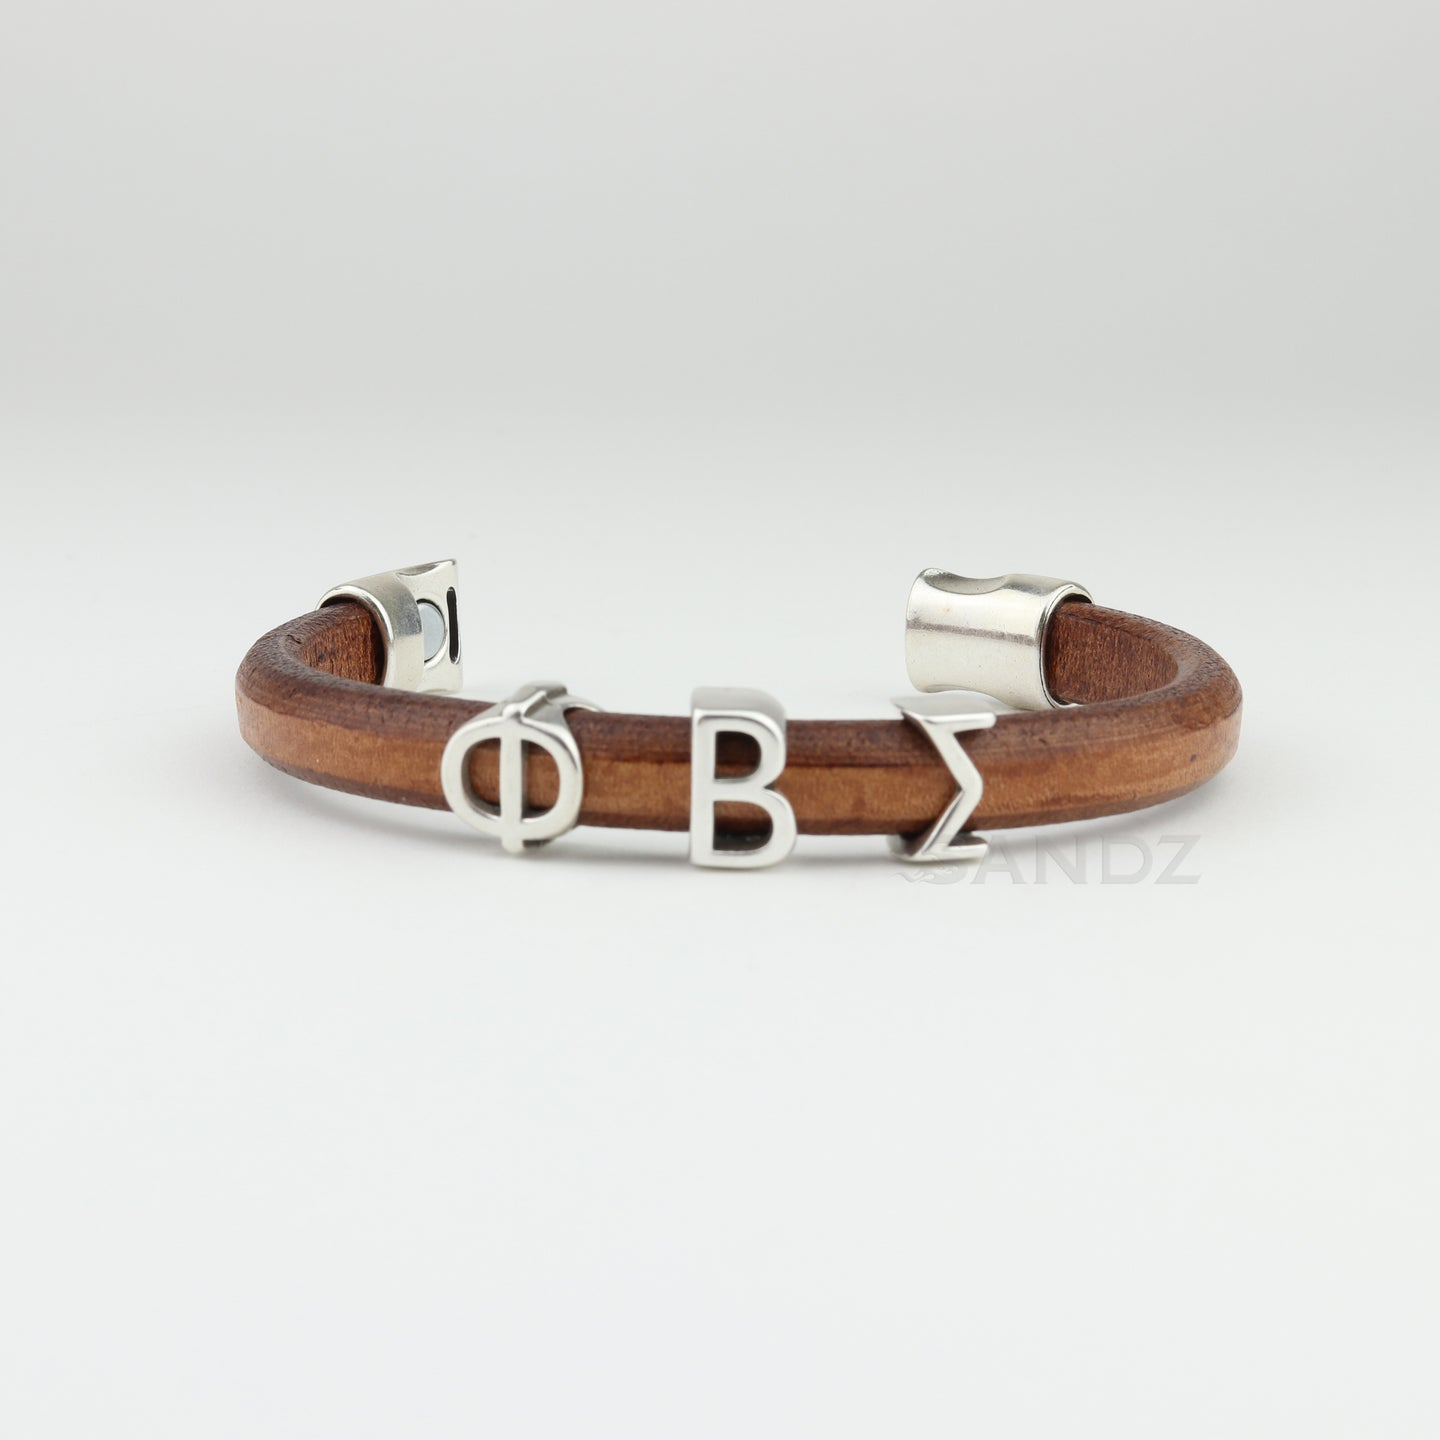 Phi Beta Sigma natural colored leather bracelet